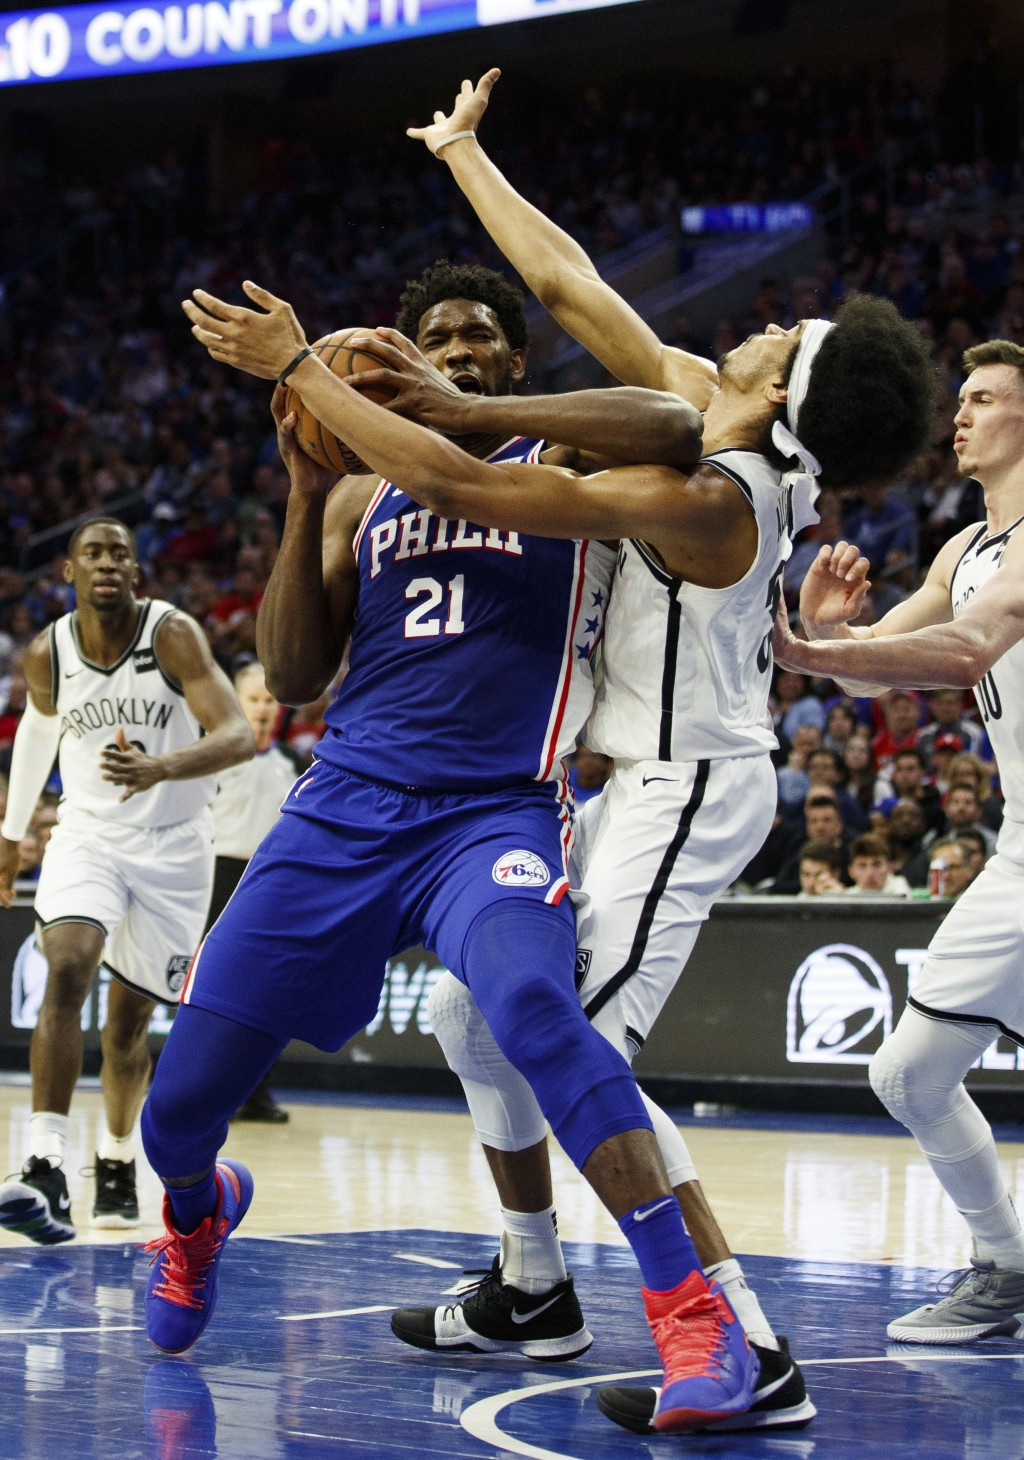 Philadelphia 76ers' Joel Embiid, left, of Cameroon, with the flaguant 1 foul on Brooklyn Nets' Jarrett Allen, right, as he was going for the shot duri